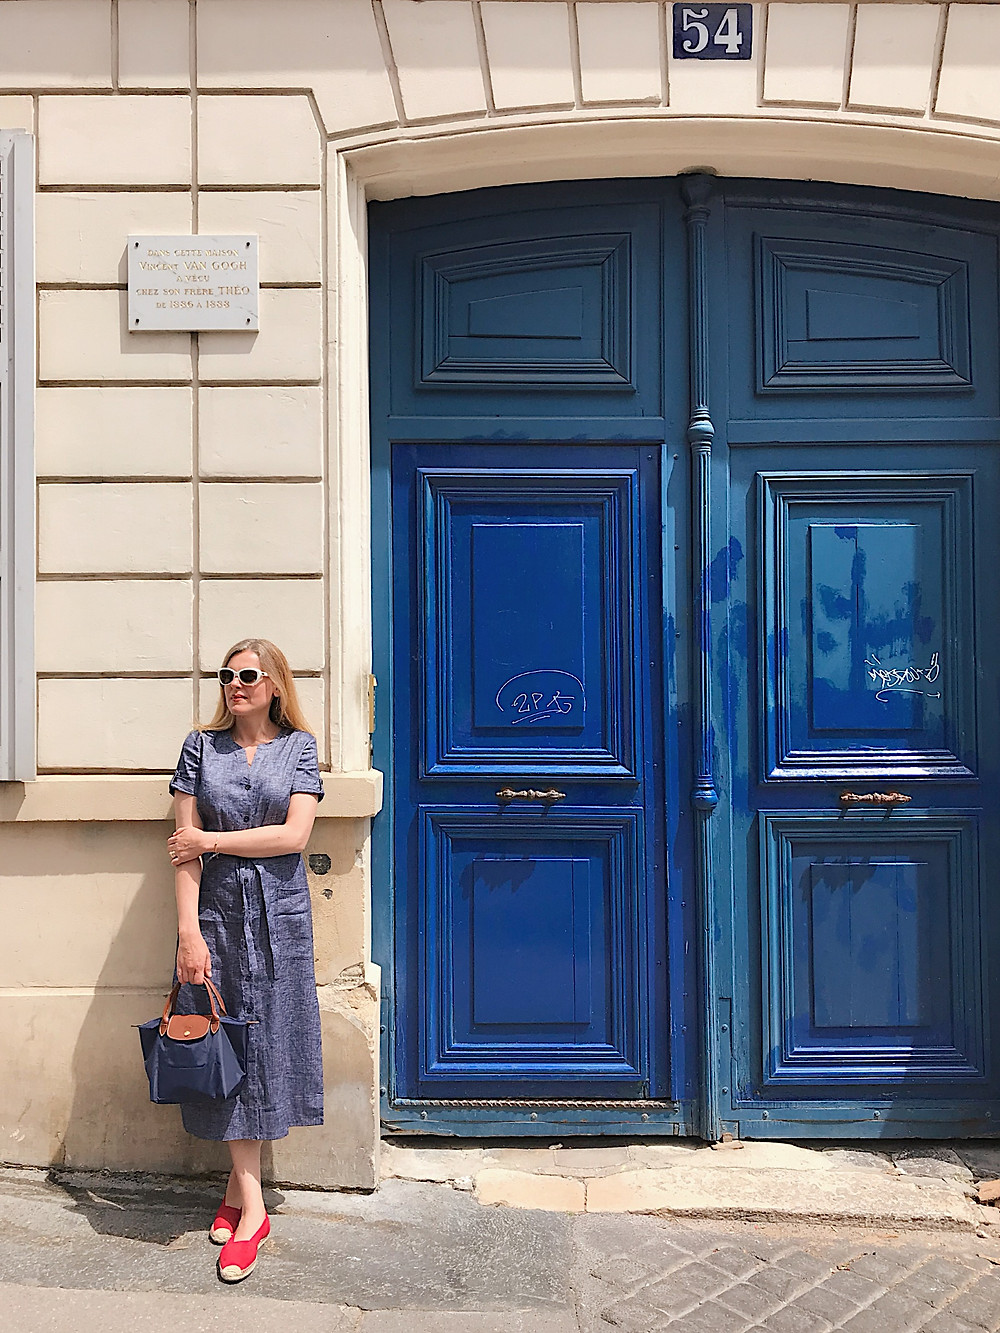 woman next to blue doors